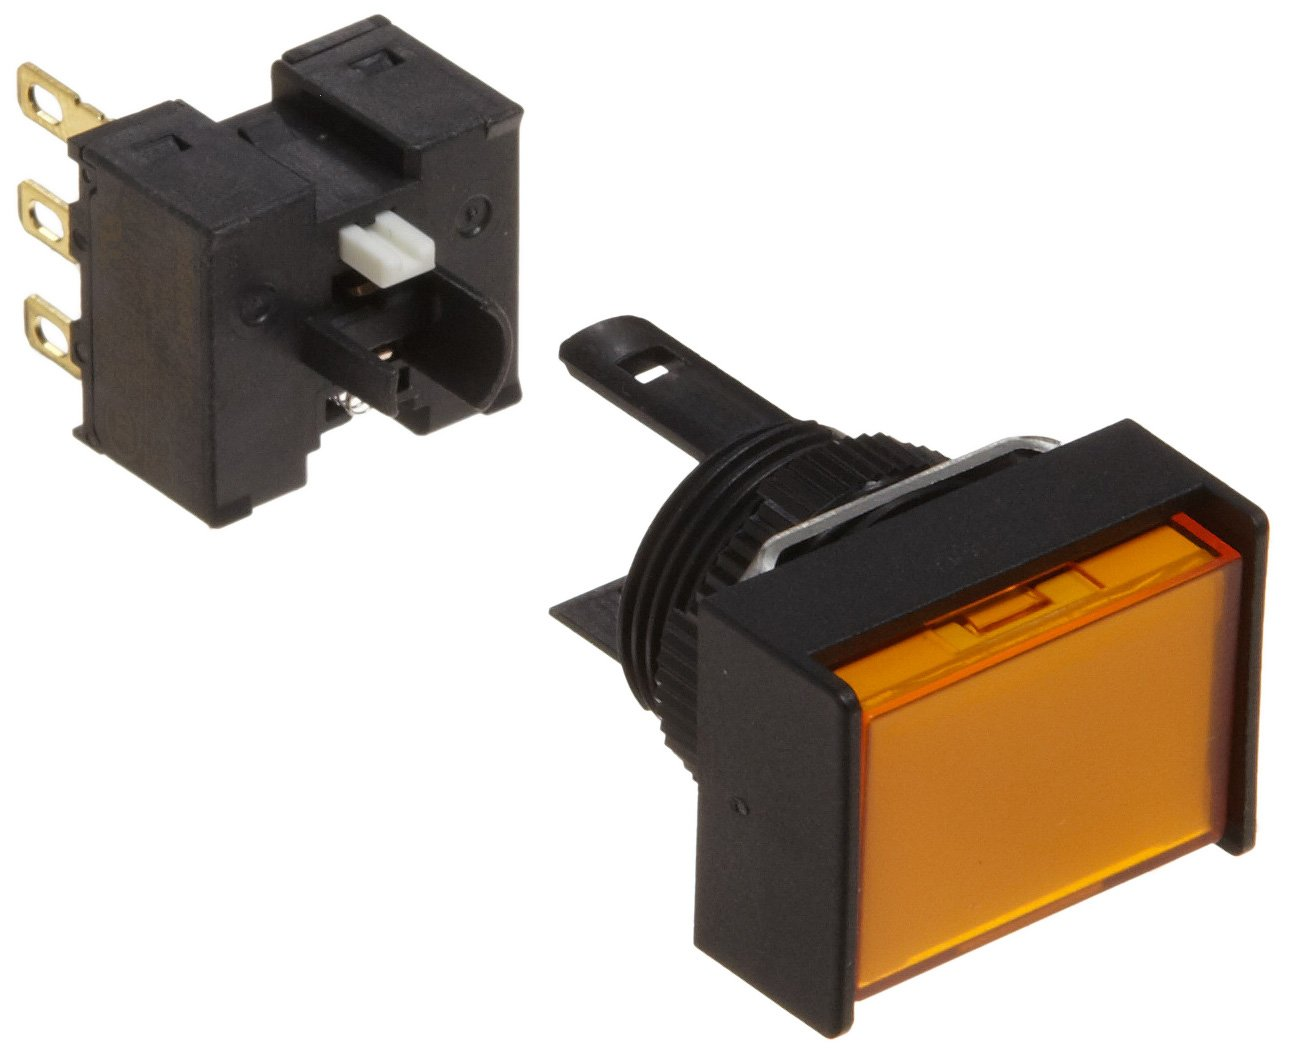 Omron A165-JYM-1 Two Way Guard Type Pushbutton and Switch, Solder Terminal, IP65 Oil Resistant, 16mm Mounting Aperture, Non-Lighted, Momentary Operation, Rectangular, Yellow, Single Pole Double Throw